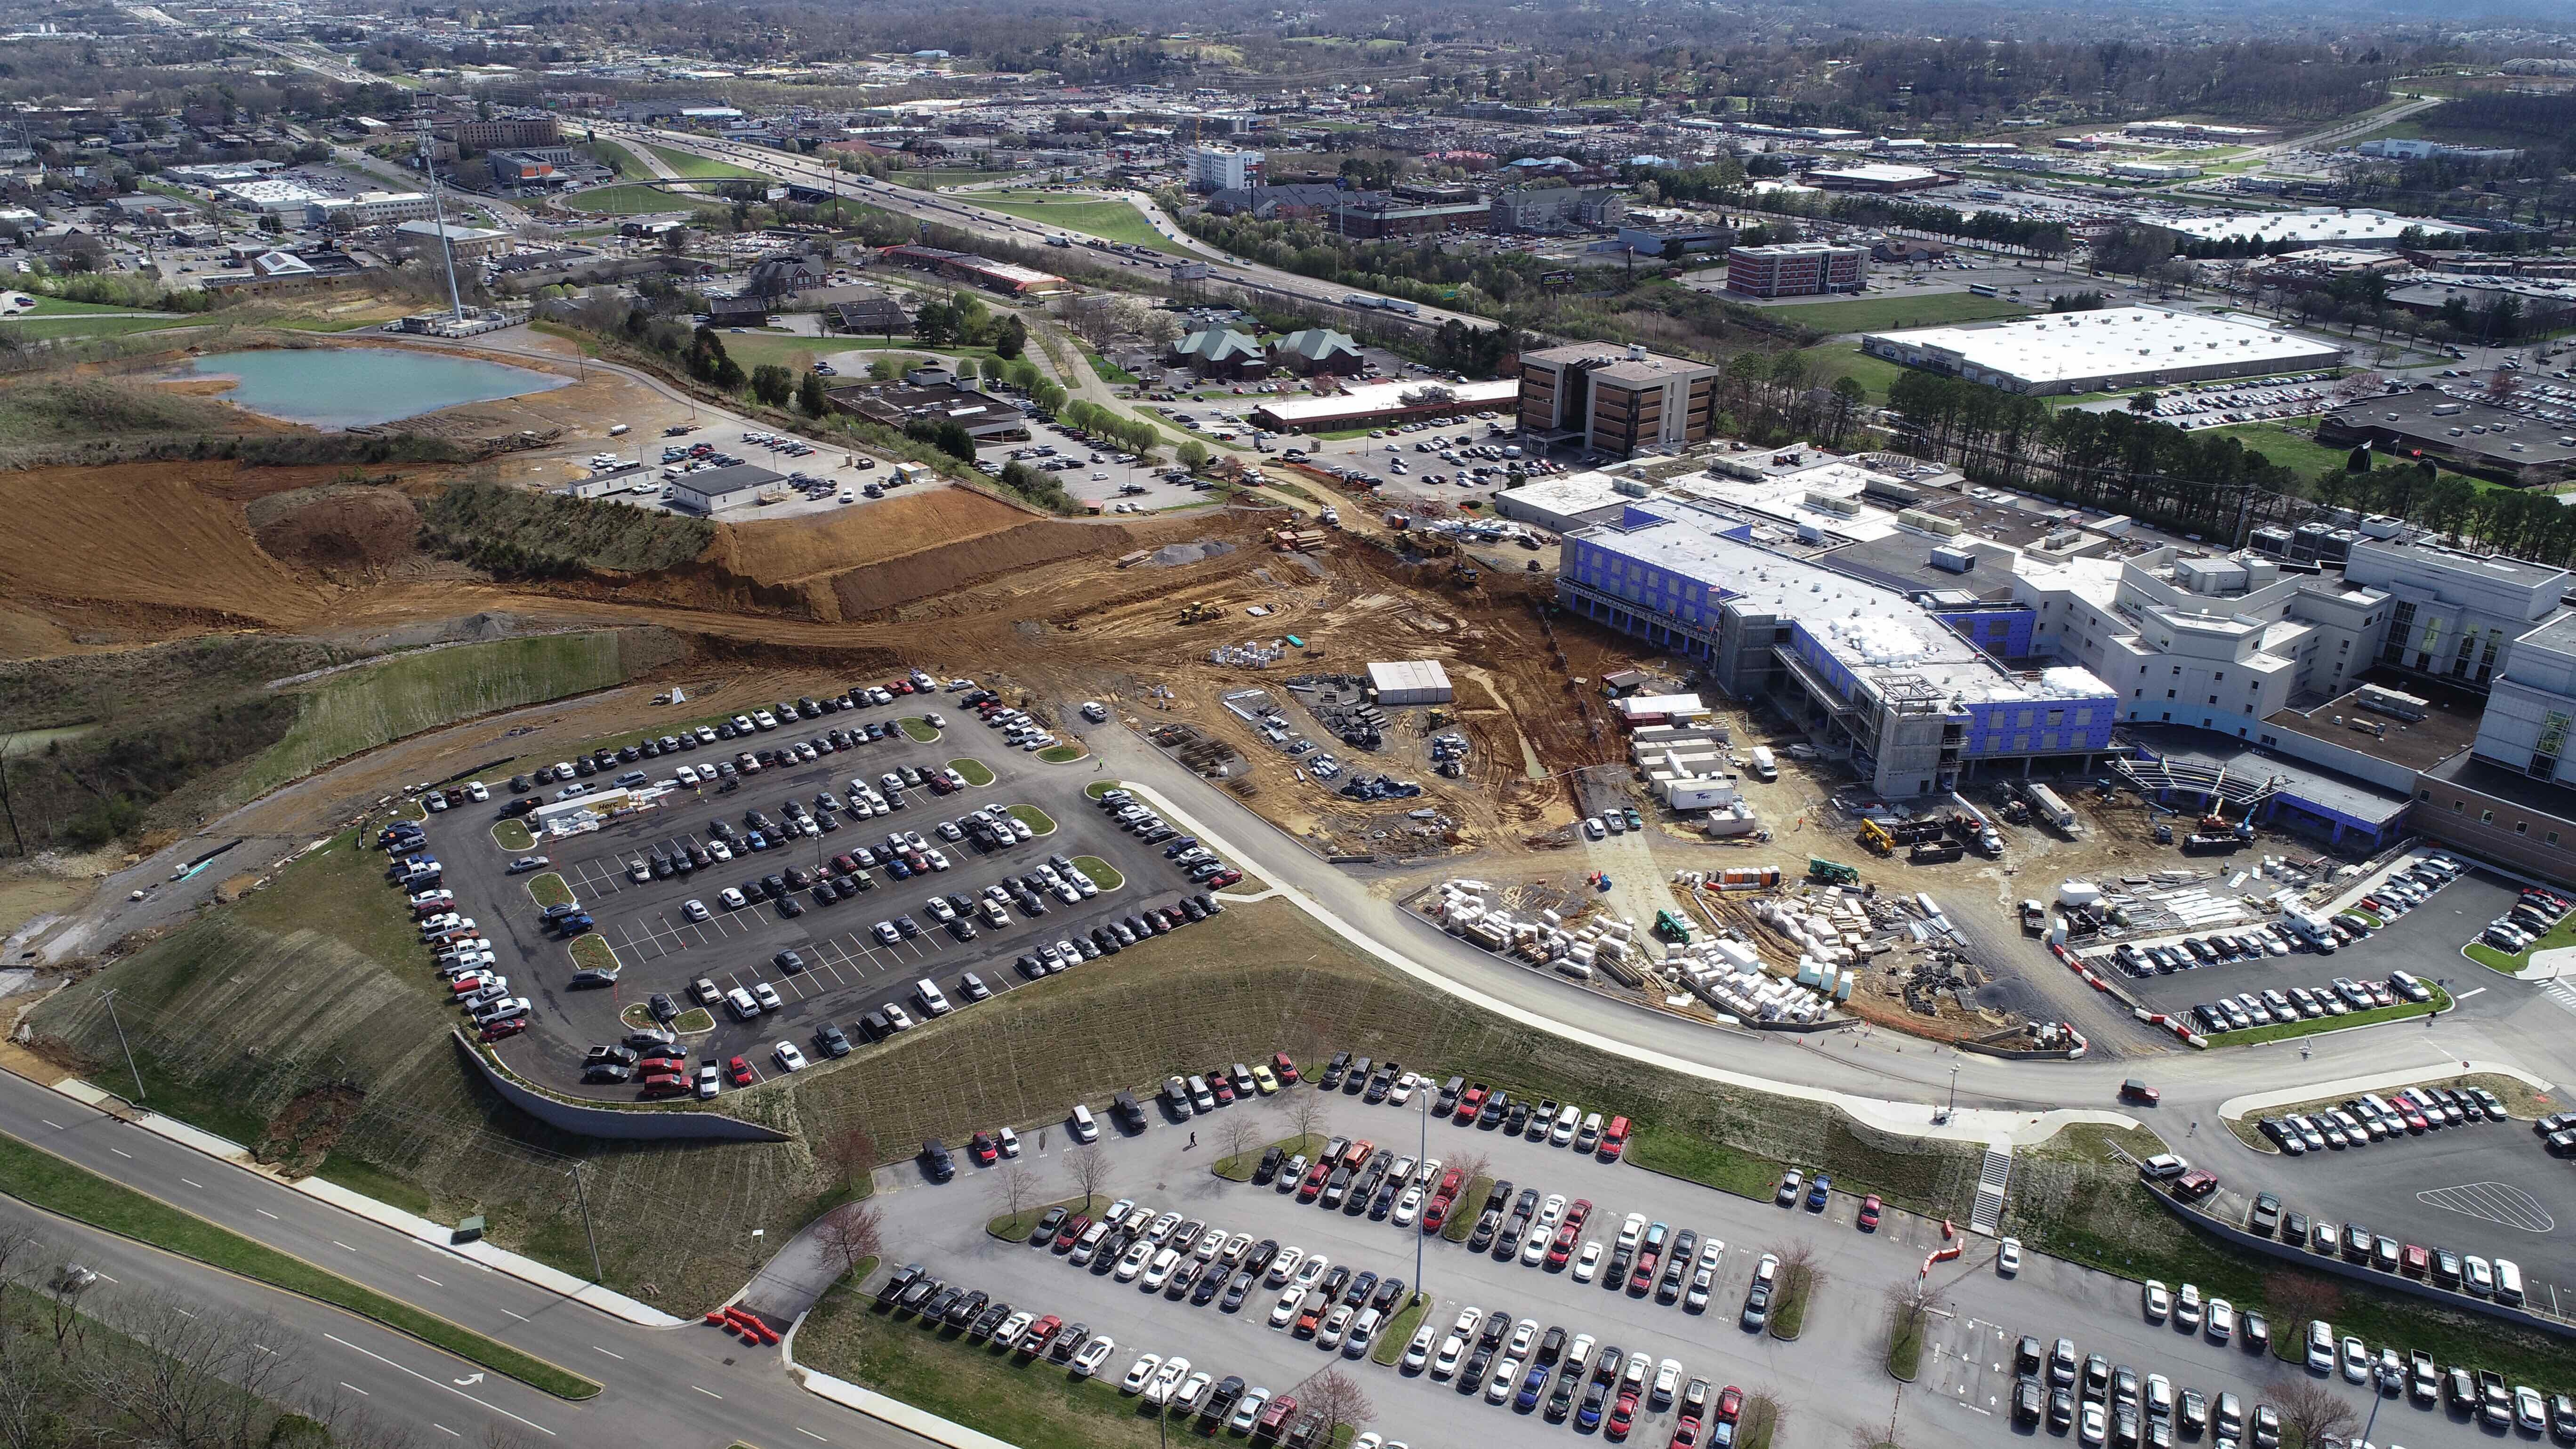 Drone aerial view over physician parking lot.